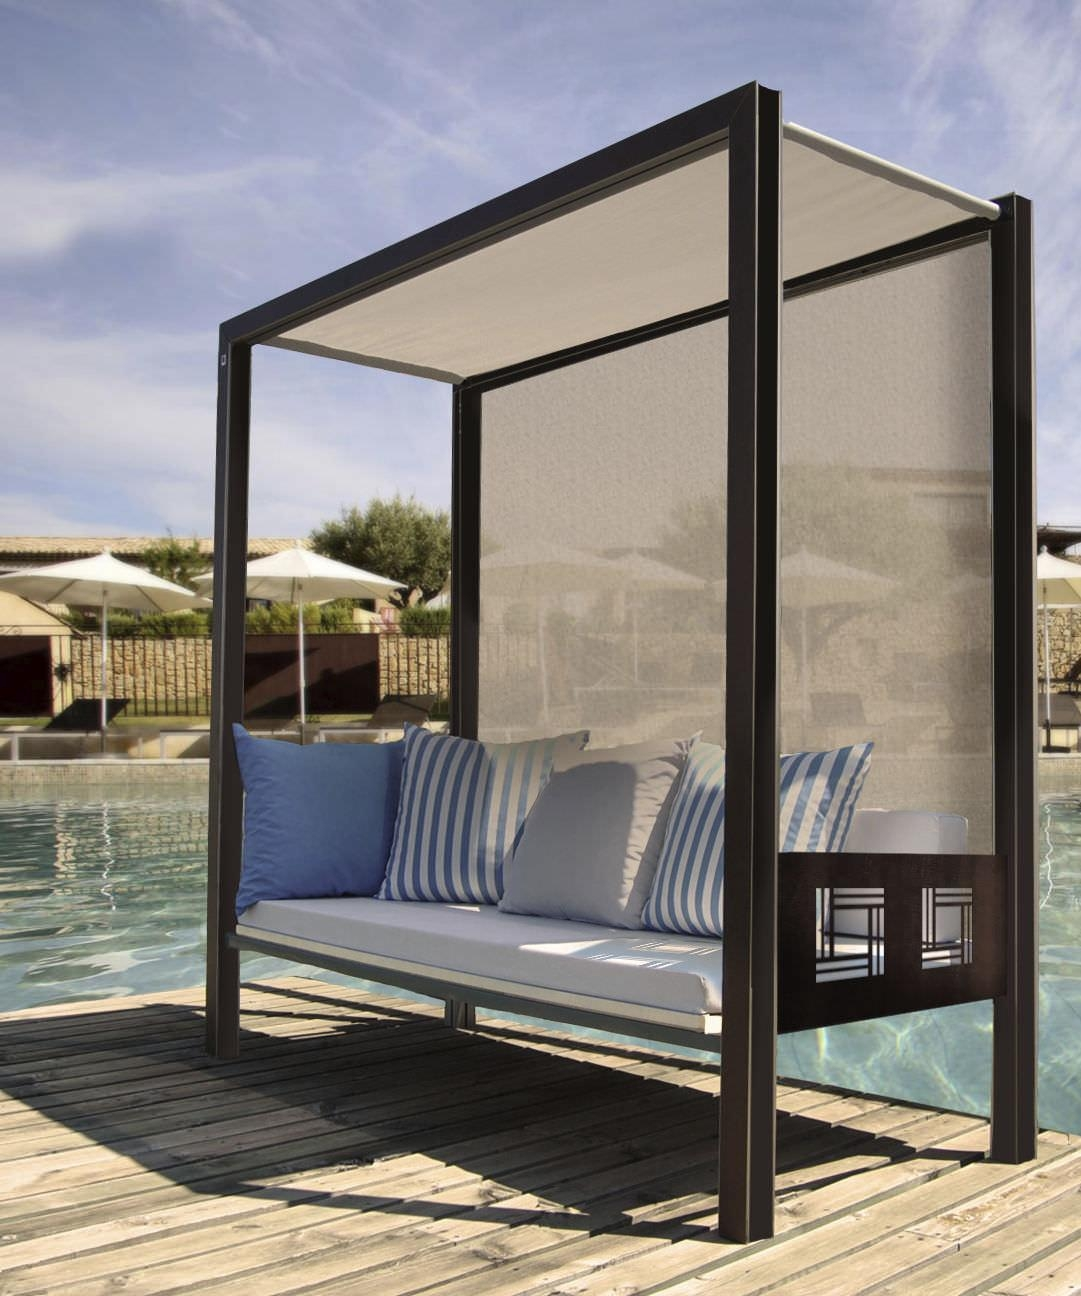 Contemporary Sofa / Garden / Metal / 3 Seater – Polymobyl Pour La Regarding Outdoor Sofas With Canopy (Image 5 of 20)